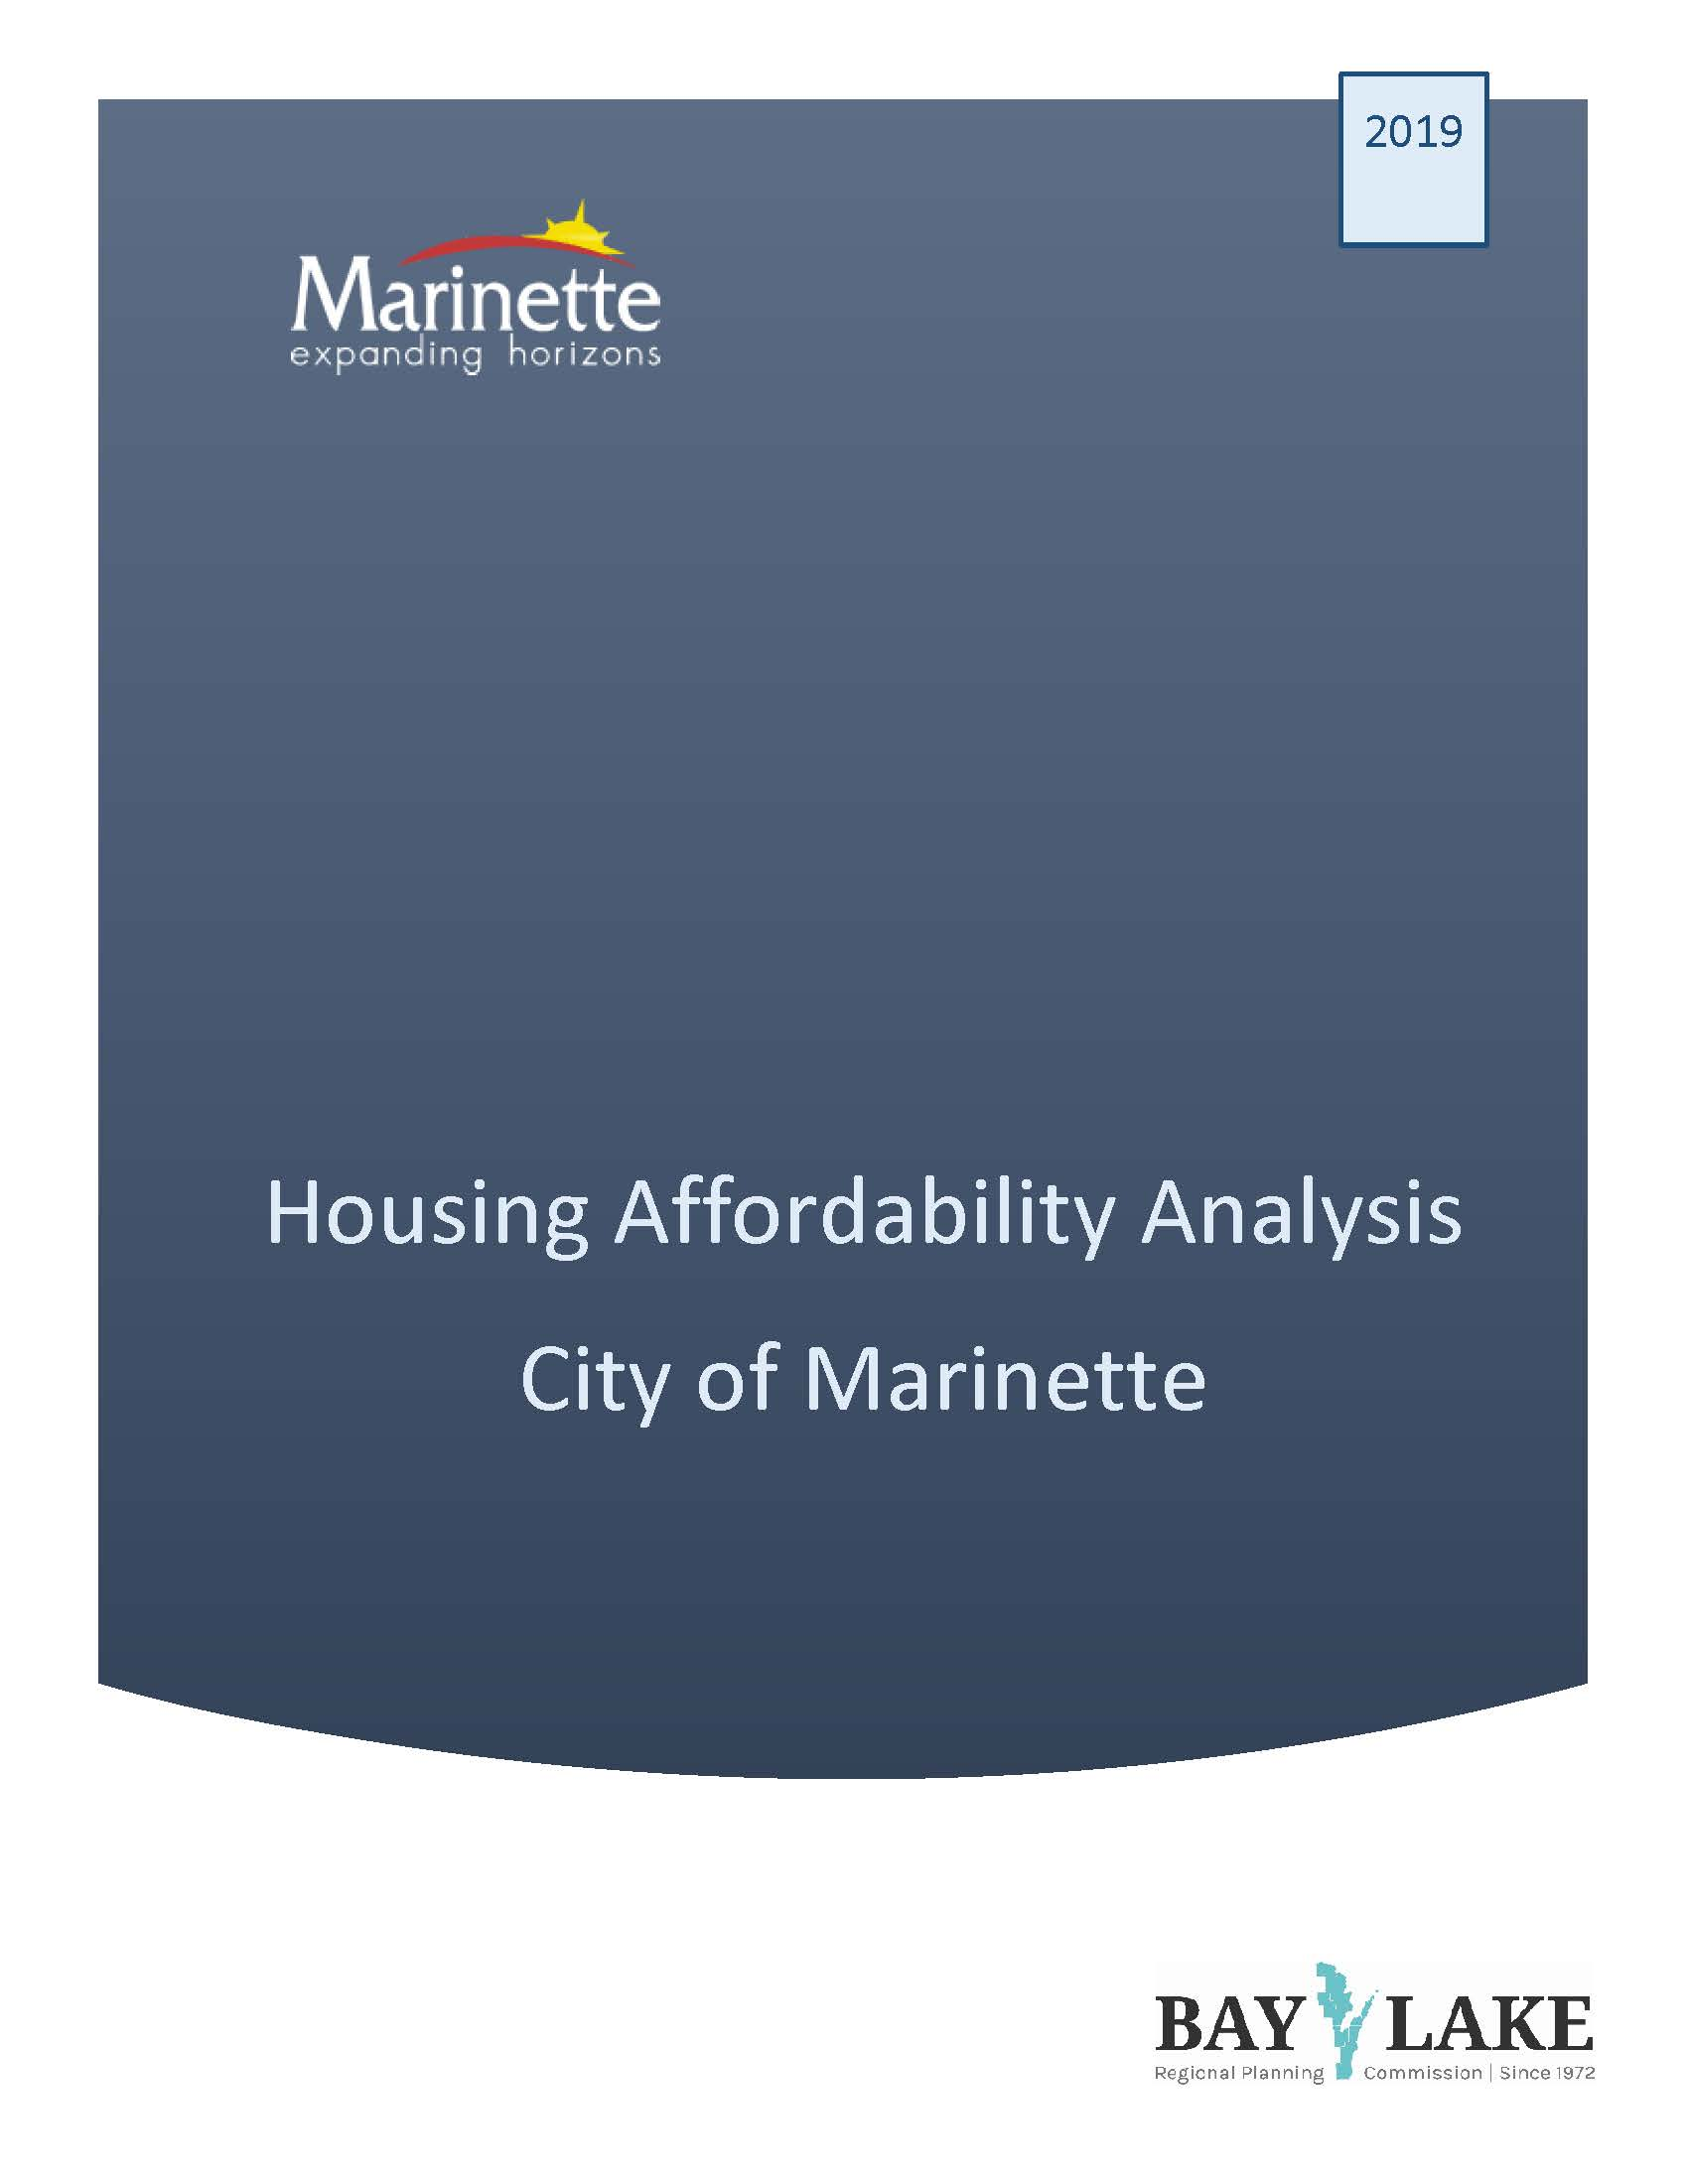 Final City of Marinette Housing Affordability Report_Page_01